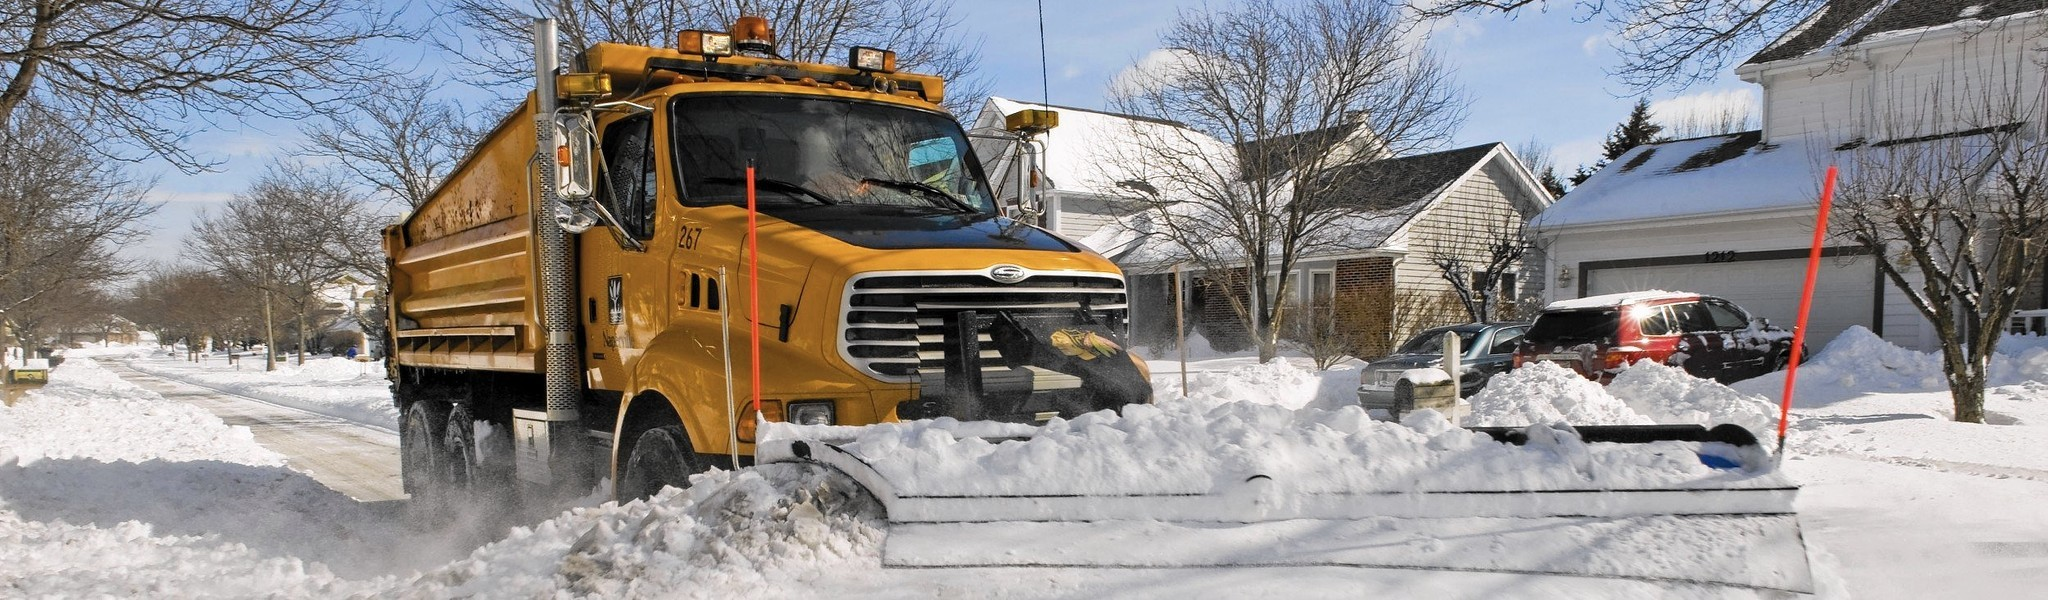 Residents could vote on township road service merger in april residents could vote on township road service merger in april naperville sun publicscrutiny Images